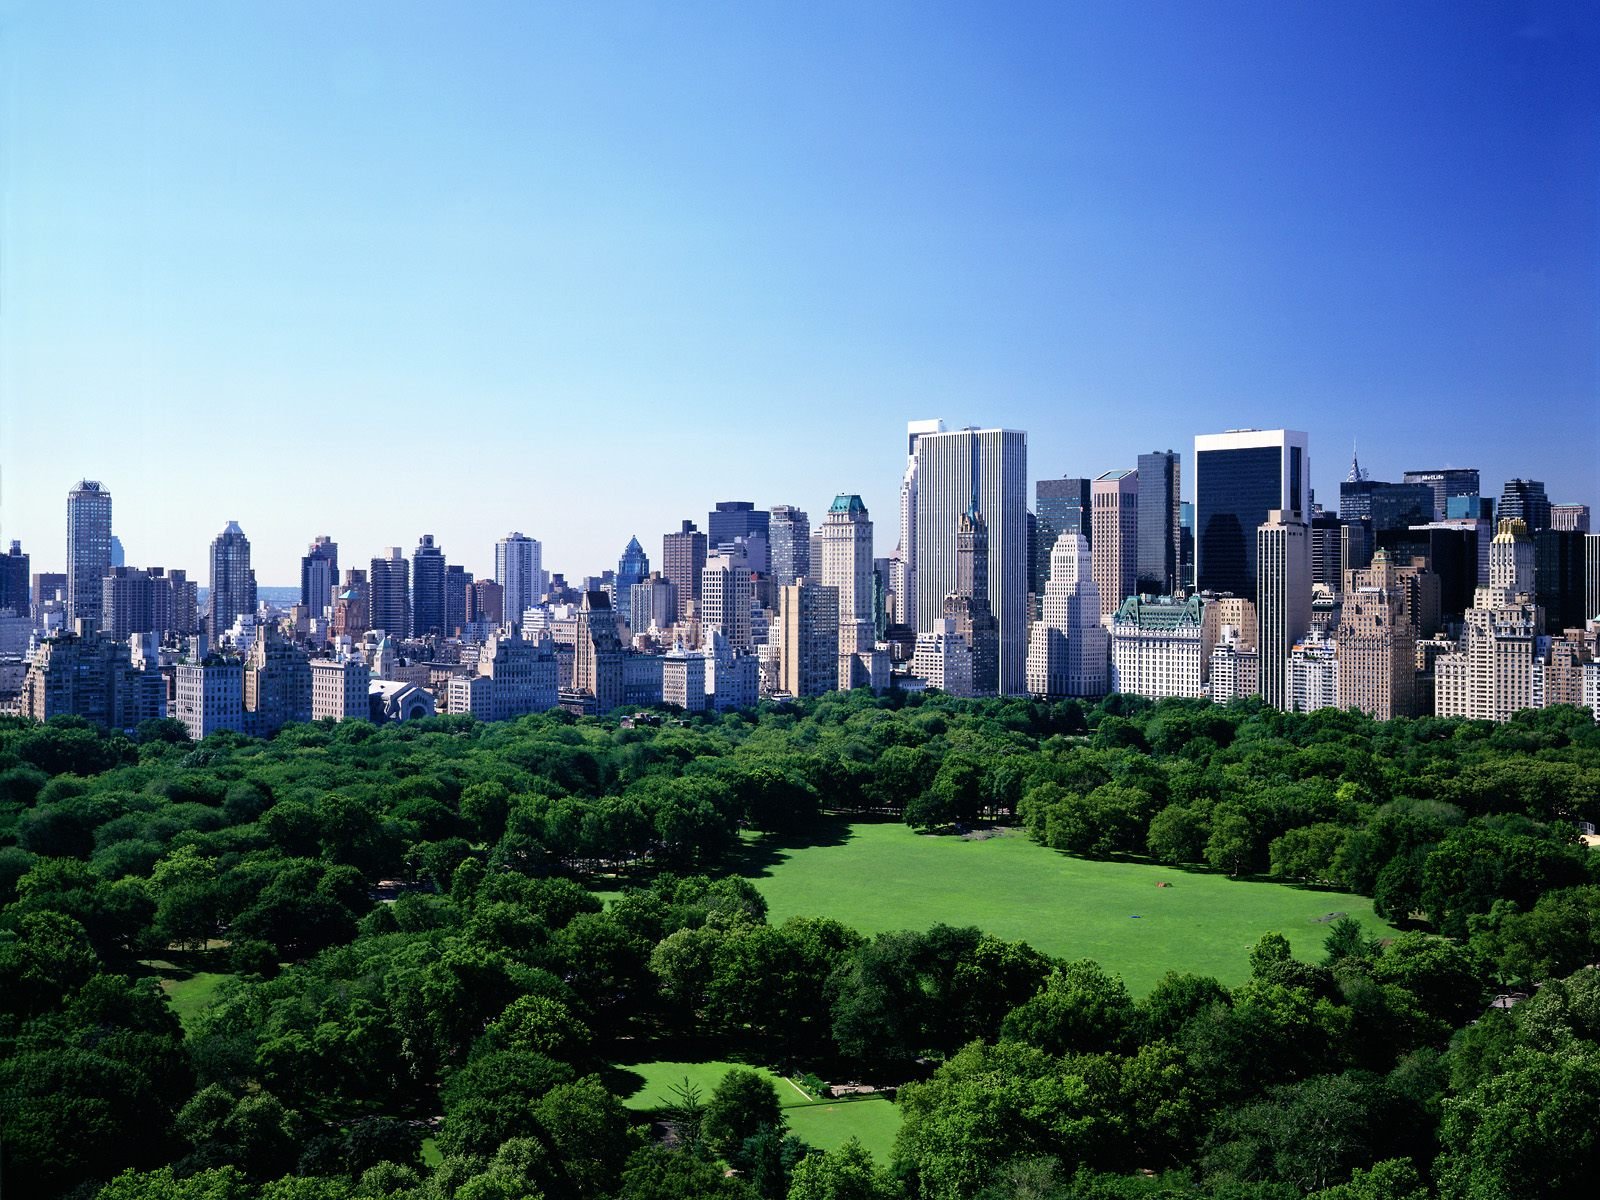 Ny city hd wallpaper free download wallpaper dawallpaperz for Famous cities in new york